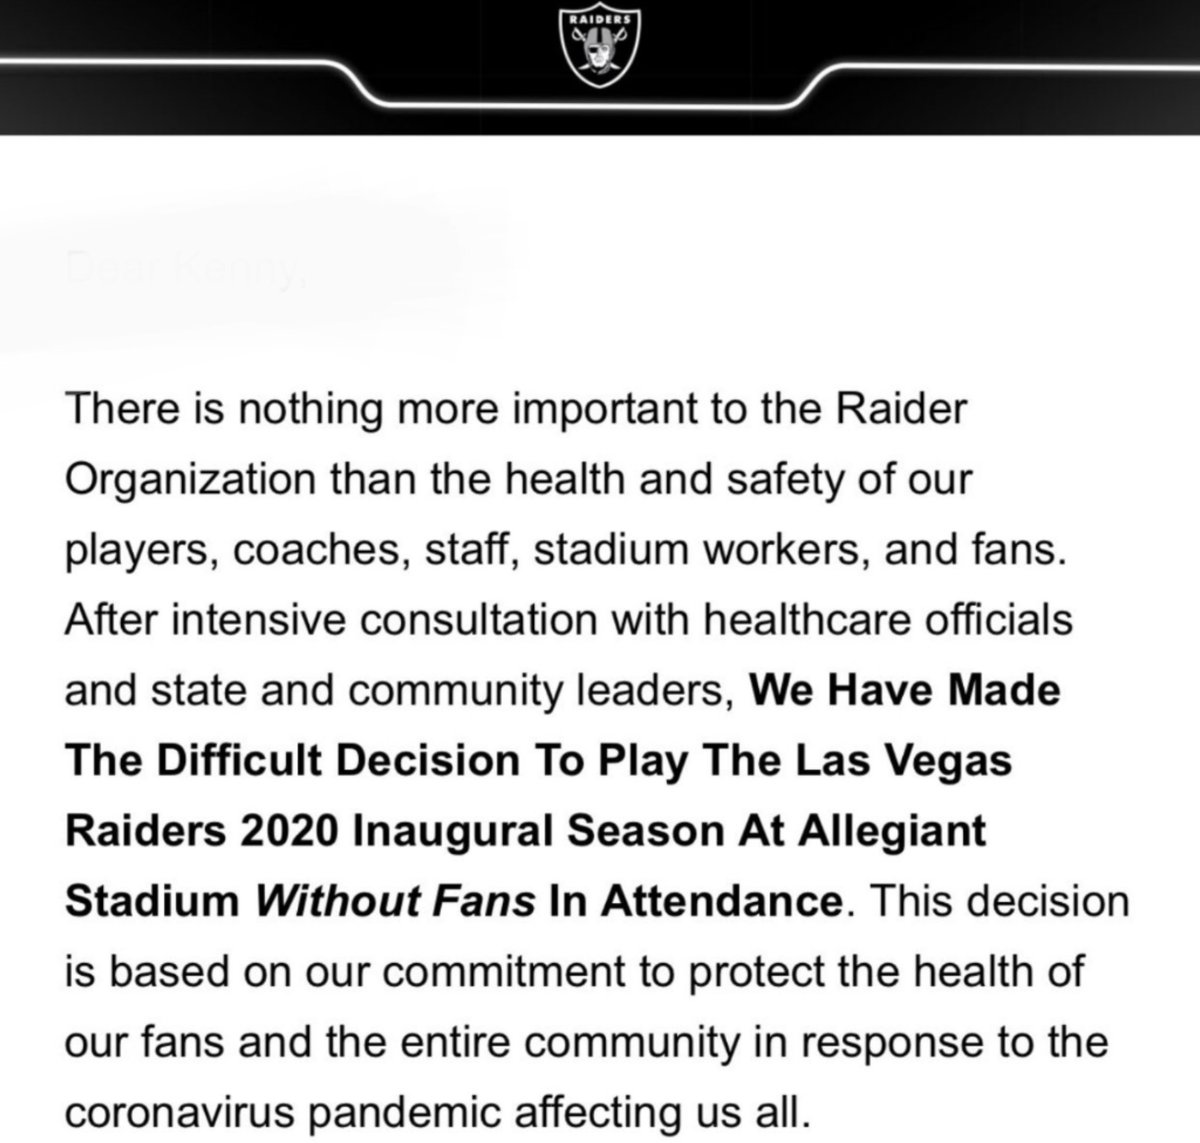 The Las Vegas Raiders, opening one of the NFL's two new stadiums this year, will play the 2020 season without fans. https://t.co/BBn8eTtDQs